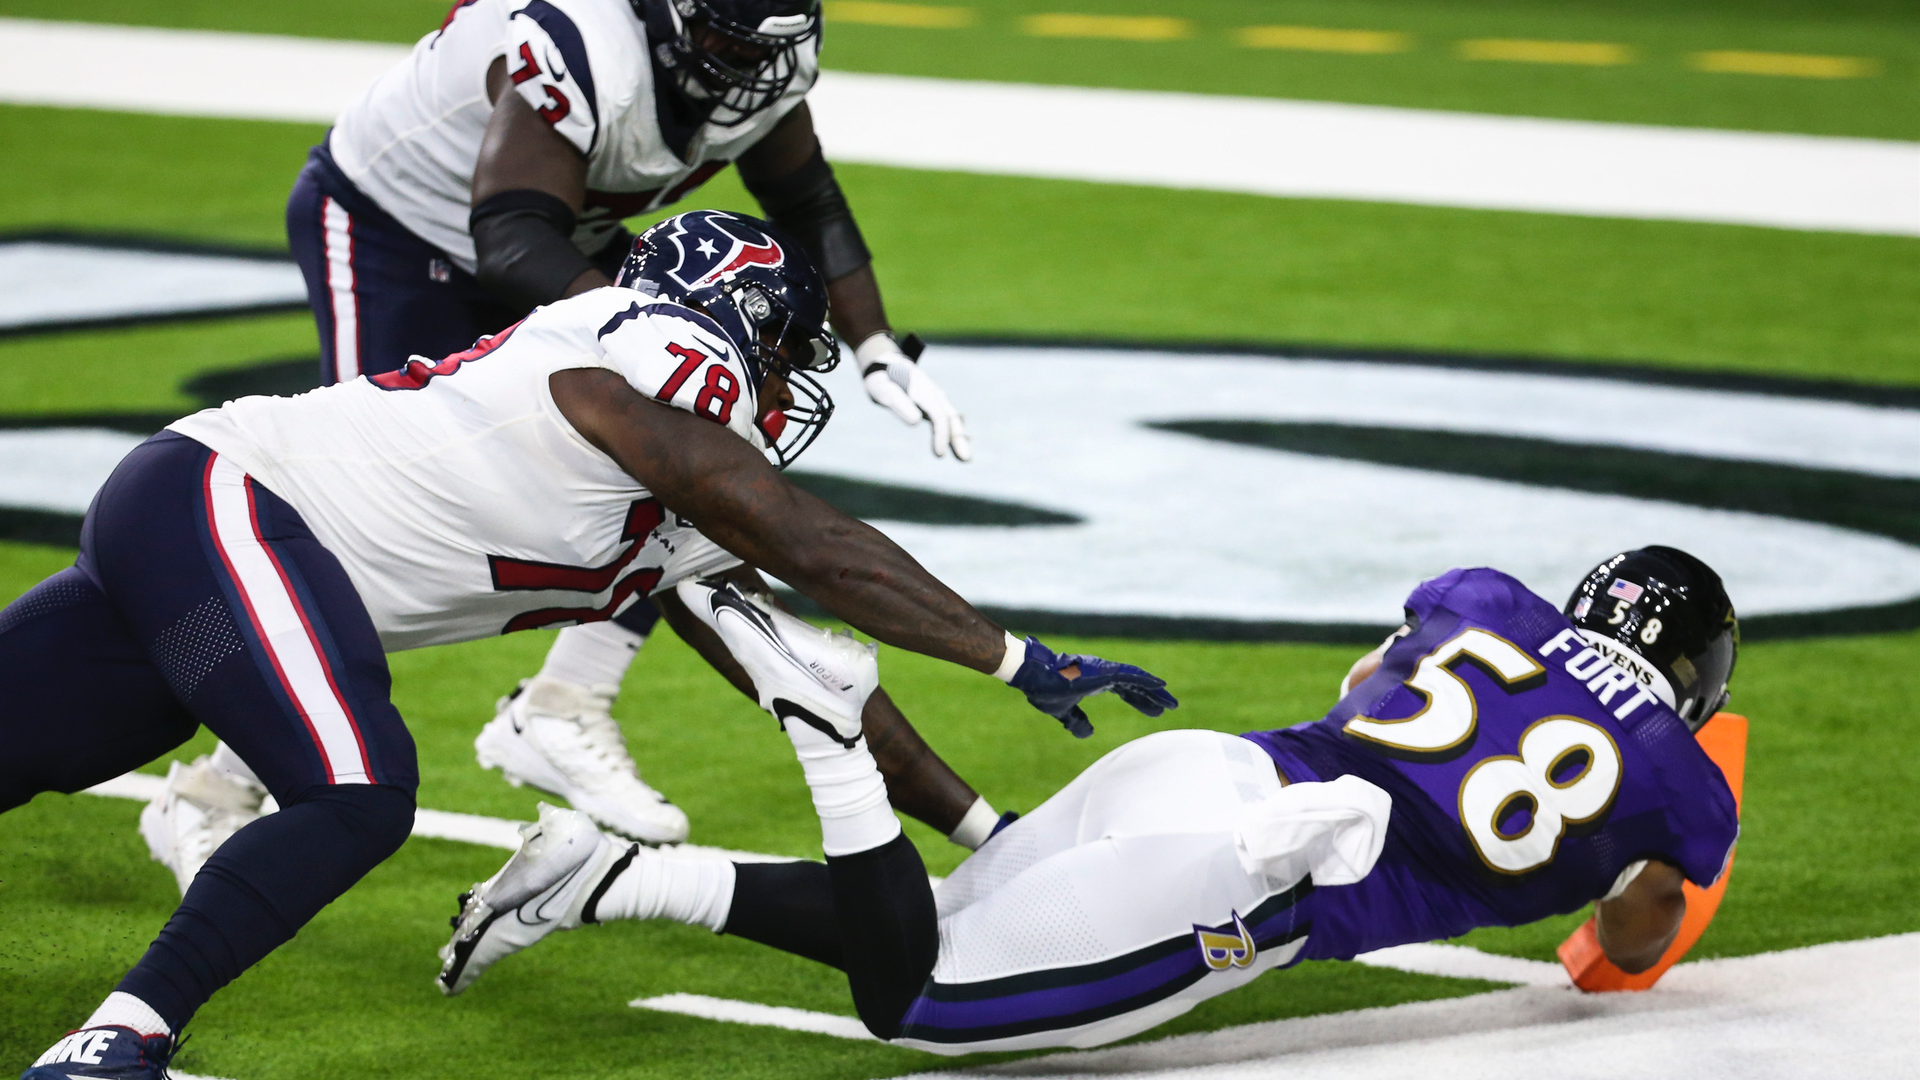 L.J. Fort's scoop and score gave Ravens needed momentum in win vs. Texans